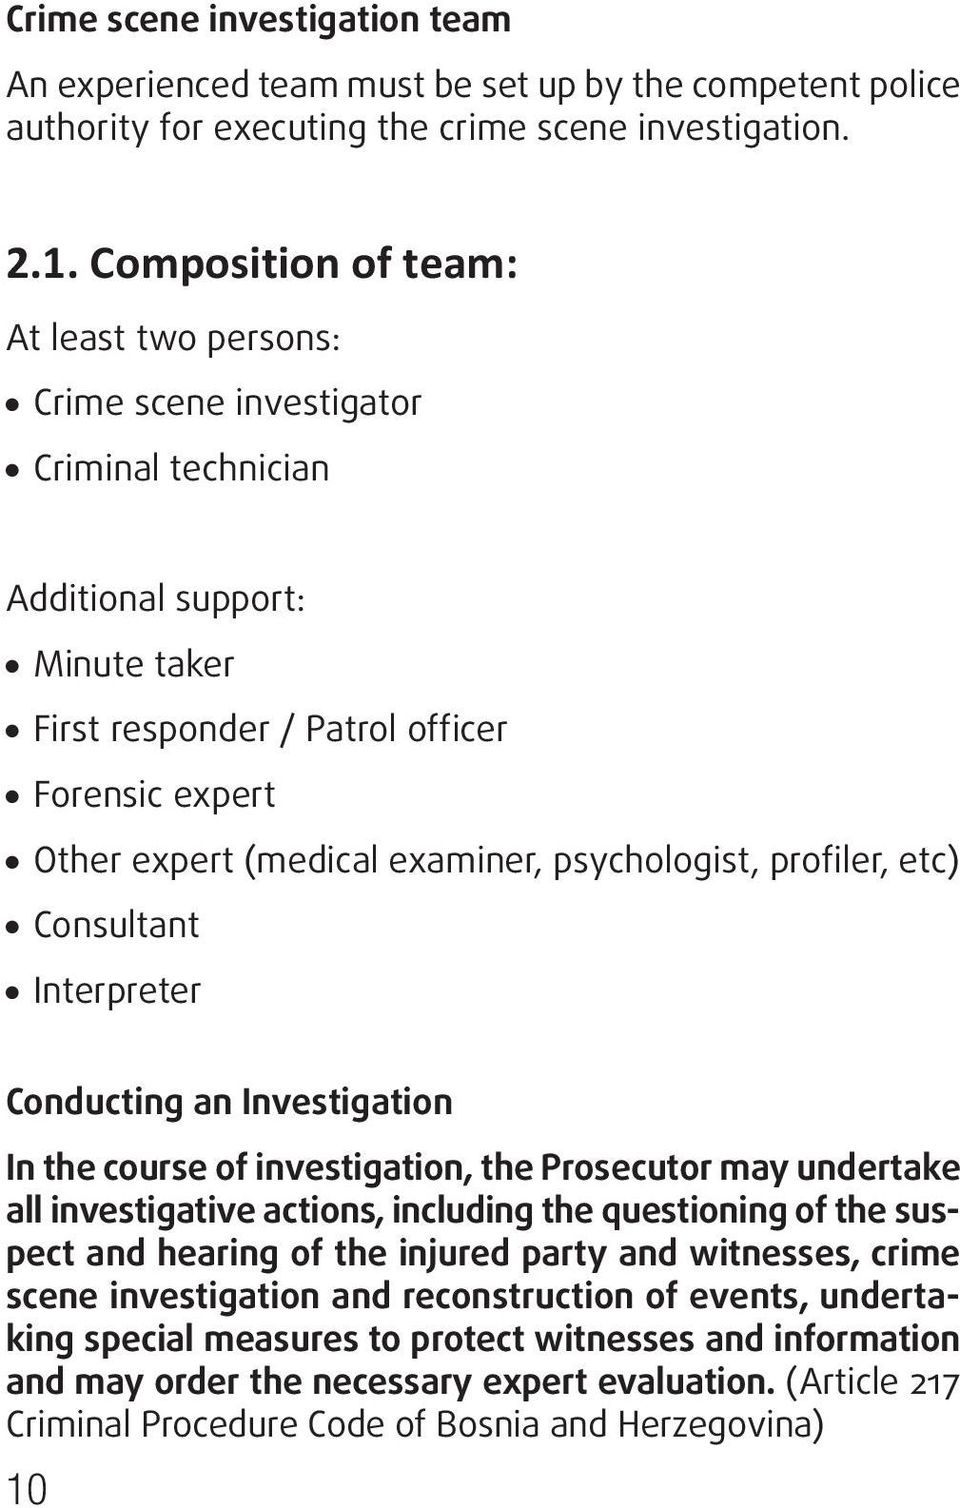 examiner, psychologist, profiler, etc) Consultant Interpreter Conducting an Investigation In the course of investigation, the Prosecutor may undertake all investigative actions, including the